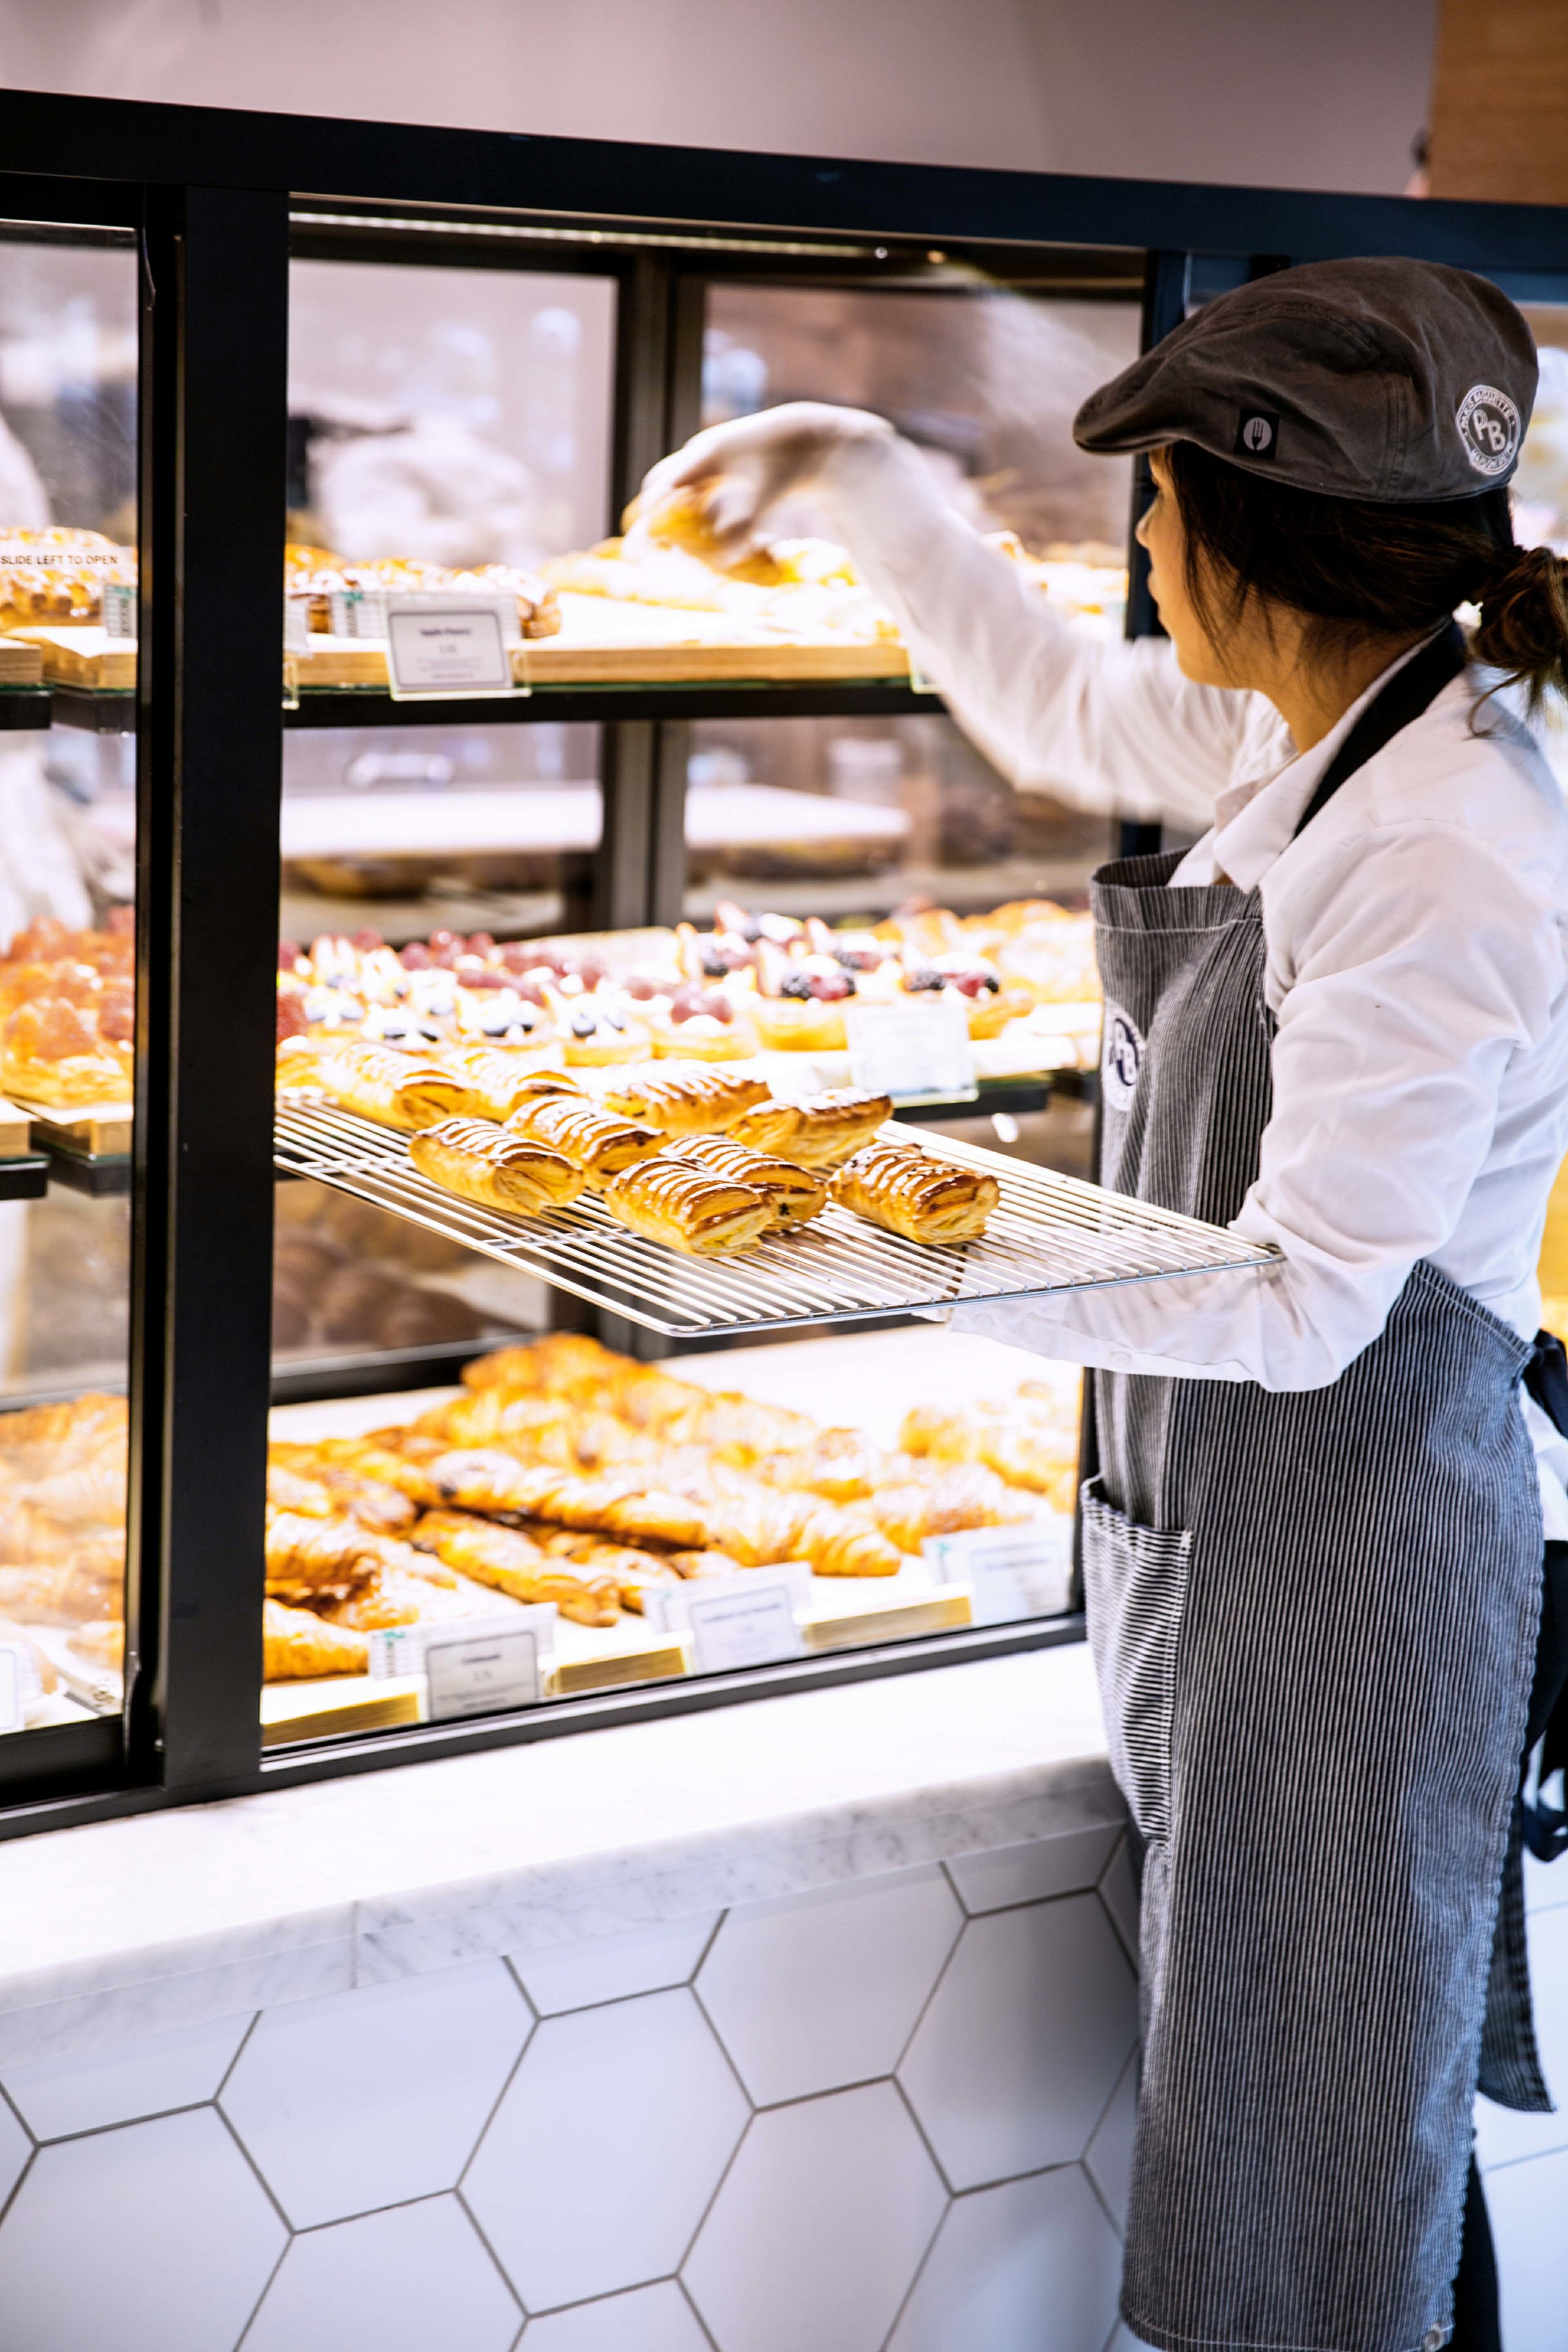 Paris Baguette   : A Fresh Take on French Baking, from Korea